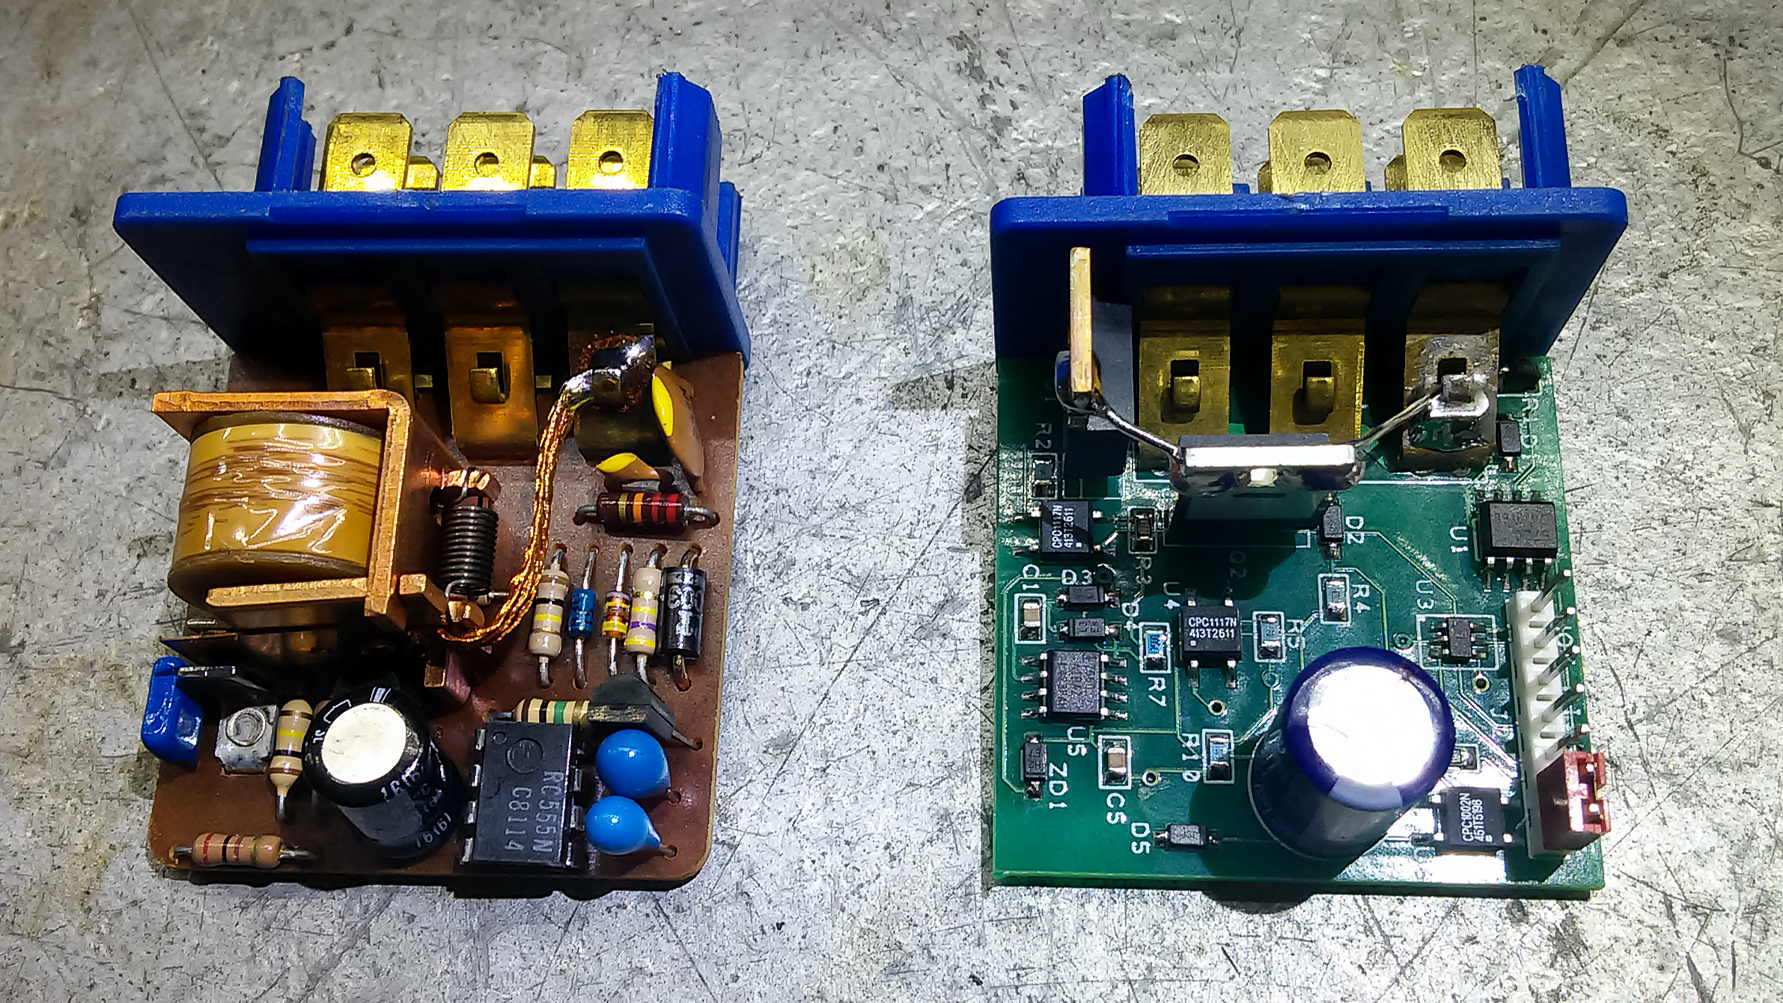 DeLorean RPM Relay Interior